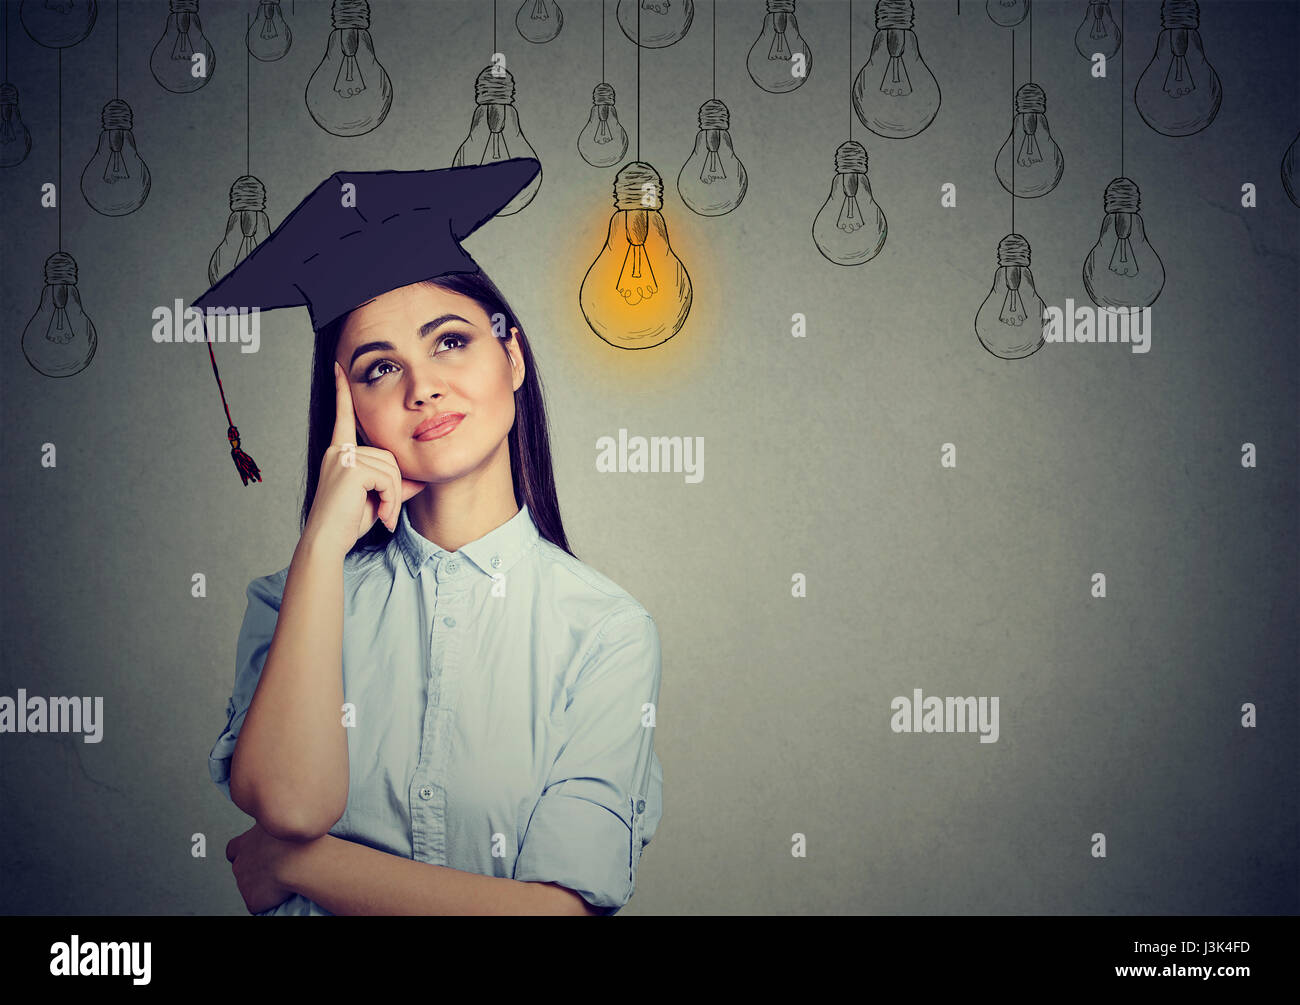 Graduate student young woman in cap gown looking up at bright light bulb thinking isolated gray wall background. - Stock Image